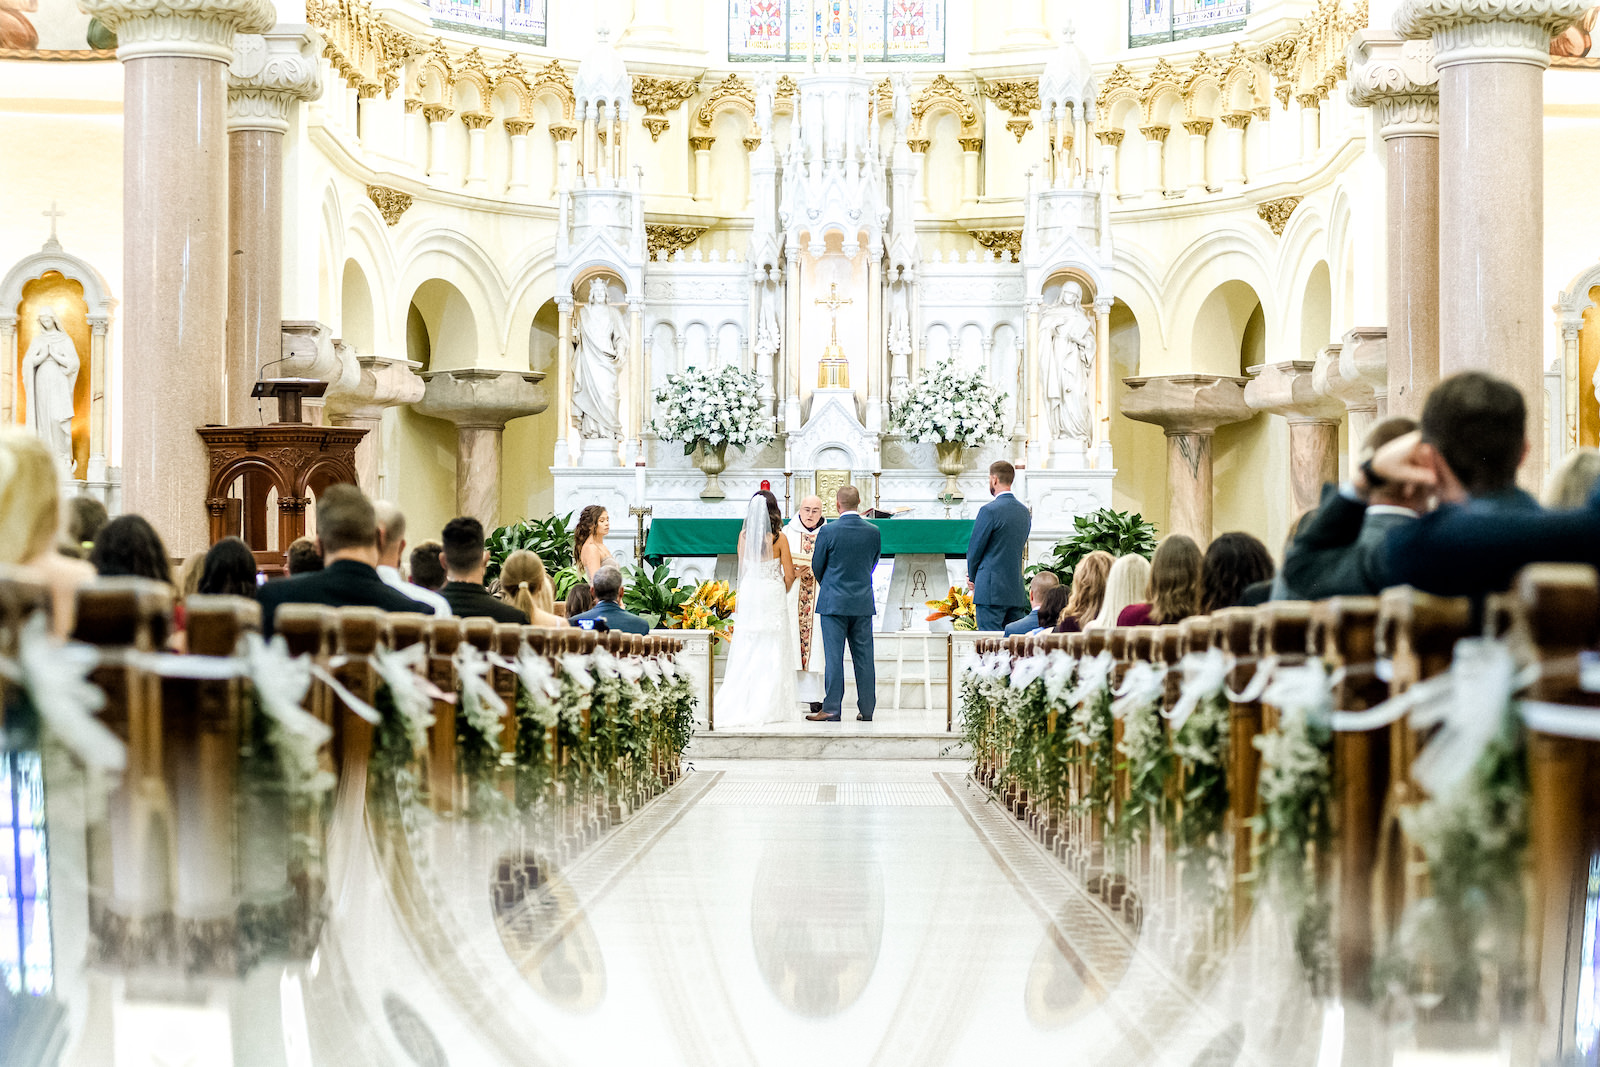 Bride and Groom Exchanging Vows during Downtown Tampa Wedding Ceremony at Sacred Heart Catholic Church | Church Ceremony Aisle with Greenery | Groom Wearing Classic Navy Suit | Dewitt for Love Photography